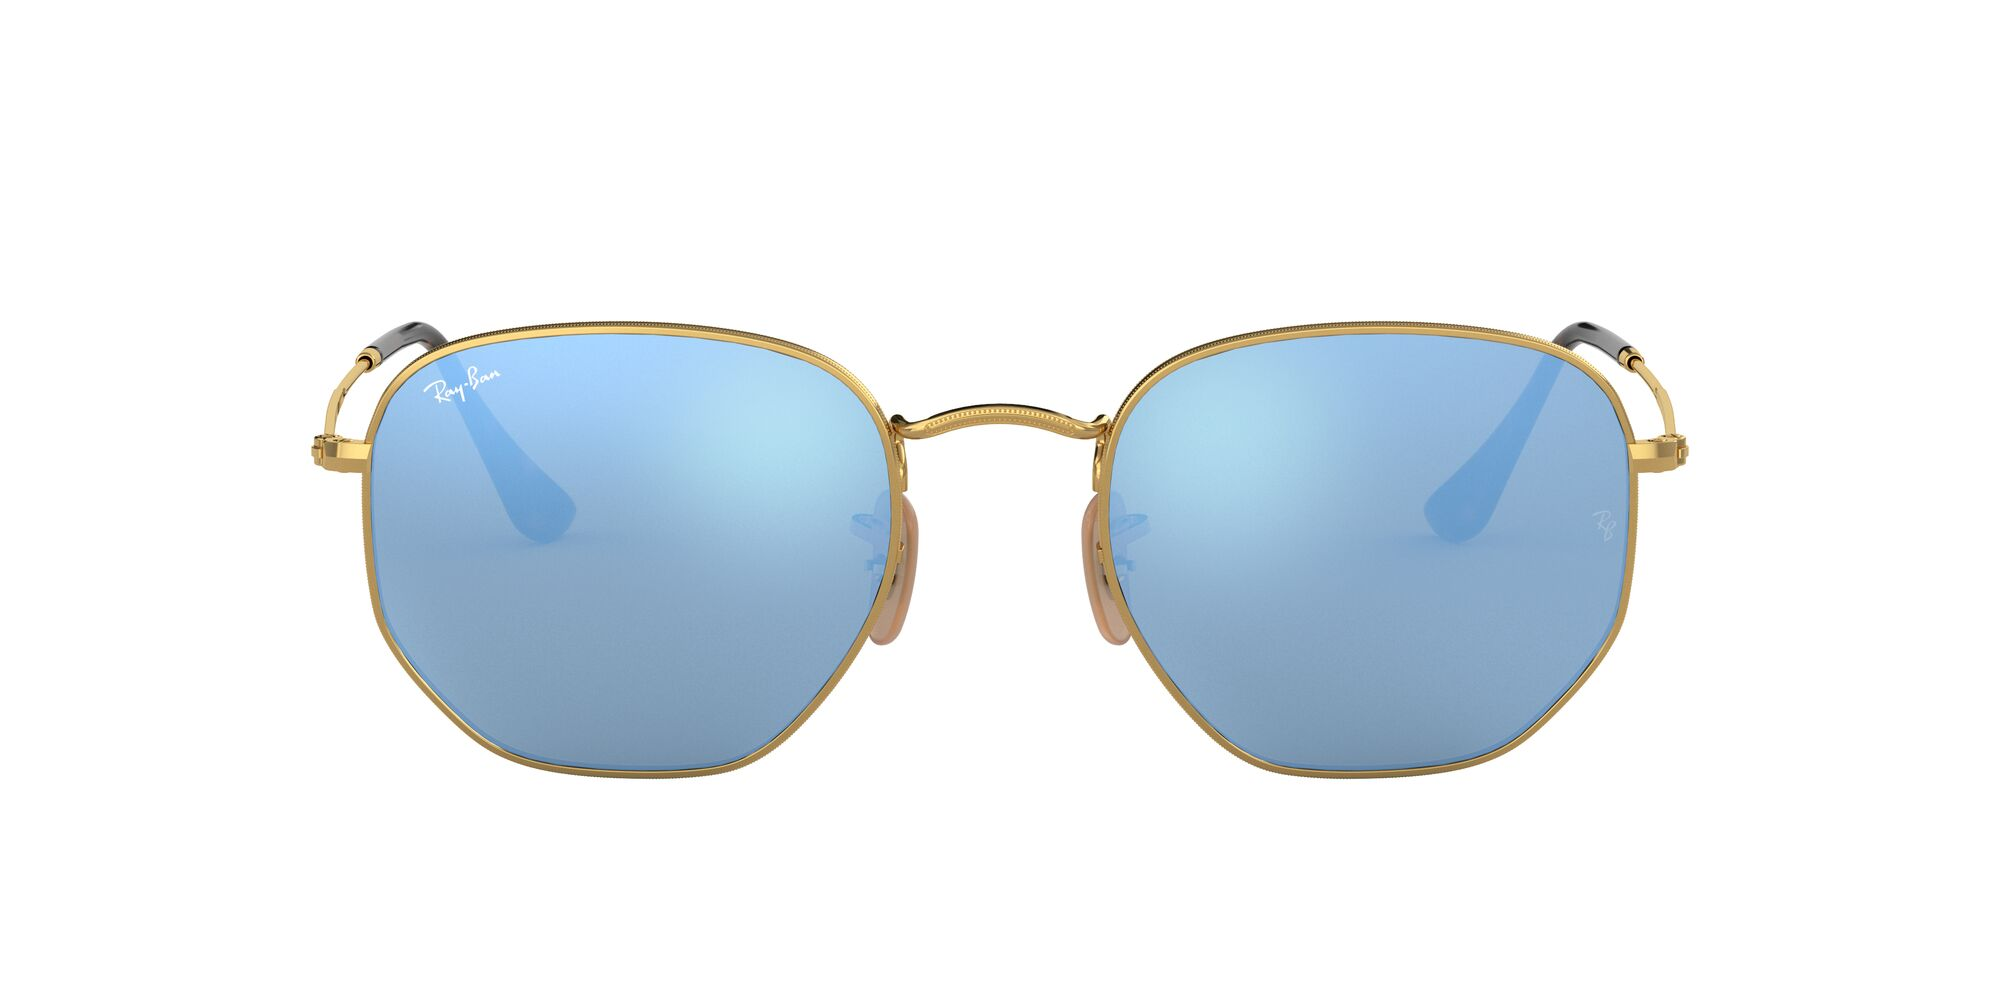 Front Ray-Ban Ray-Ban 0RB3548N 001/9O 48/21 Goud, Blauw/Blauw